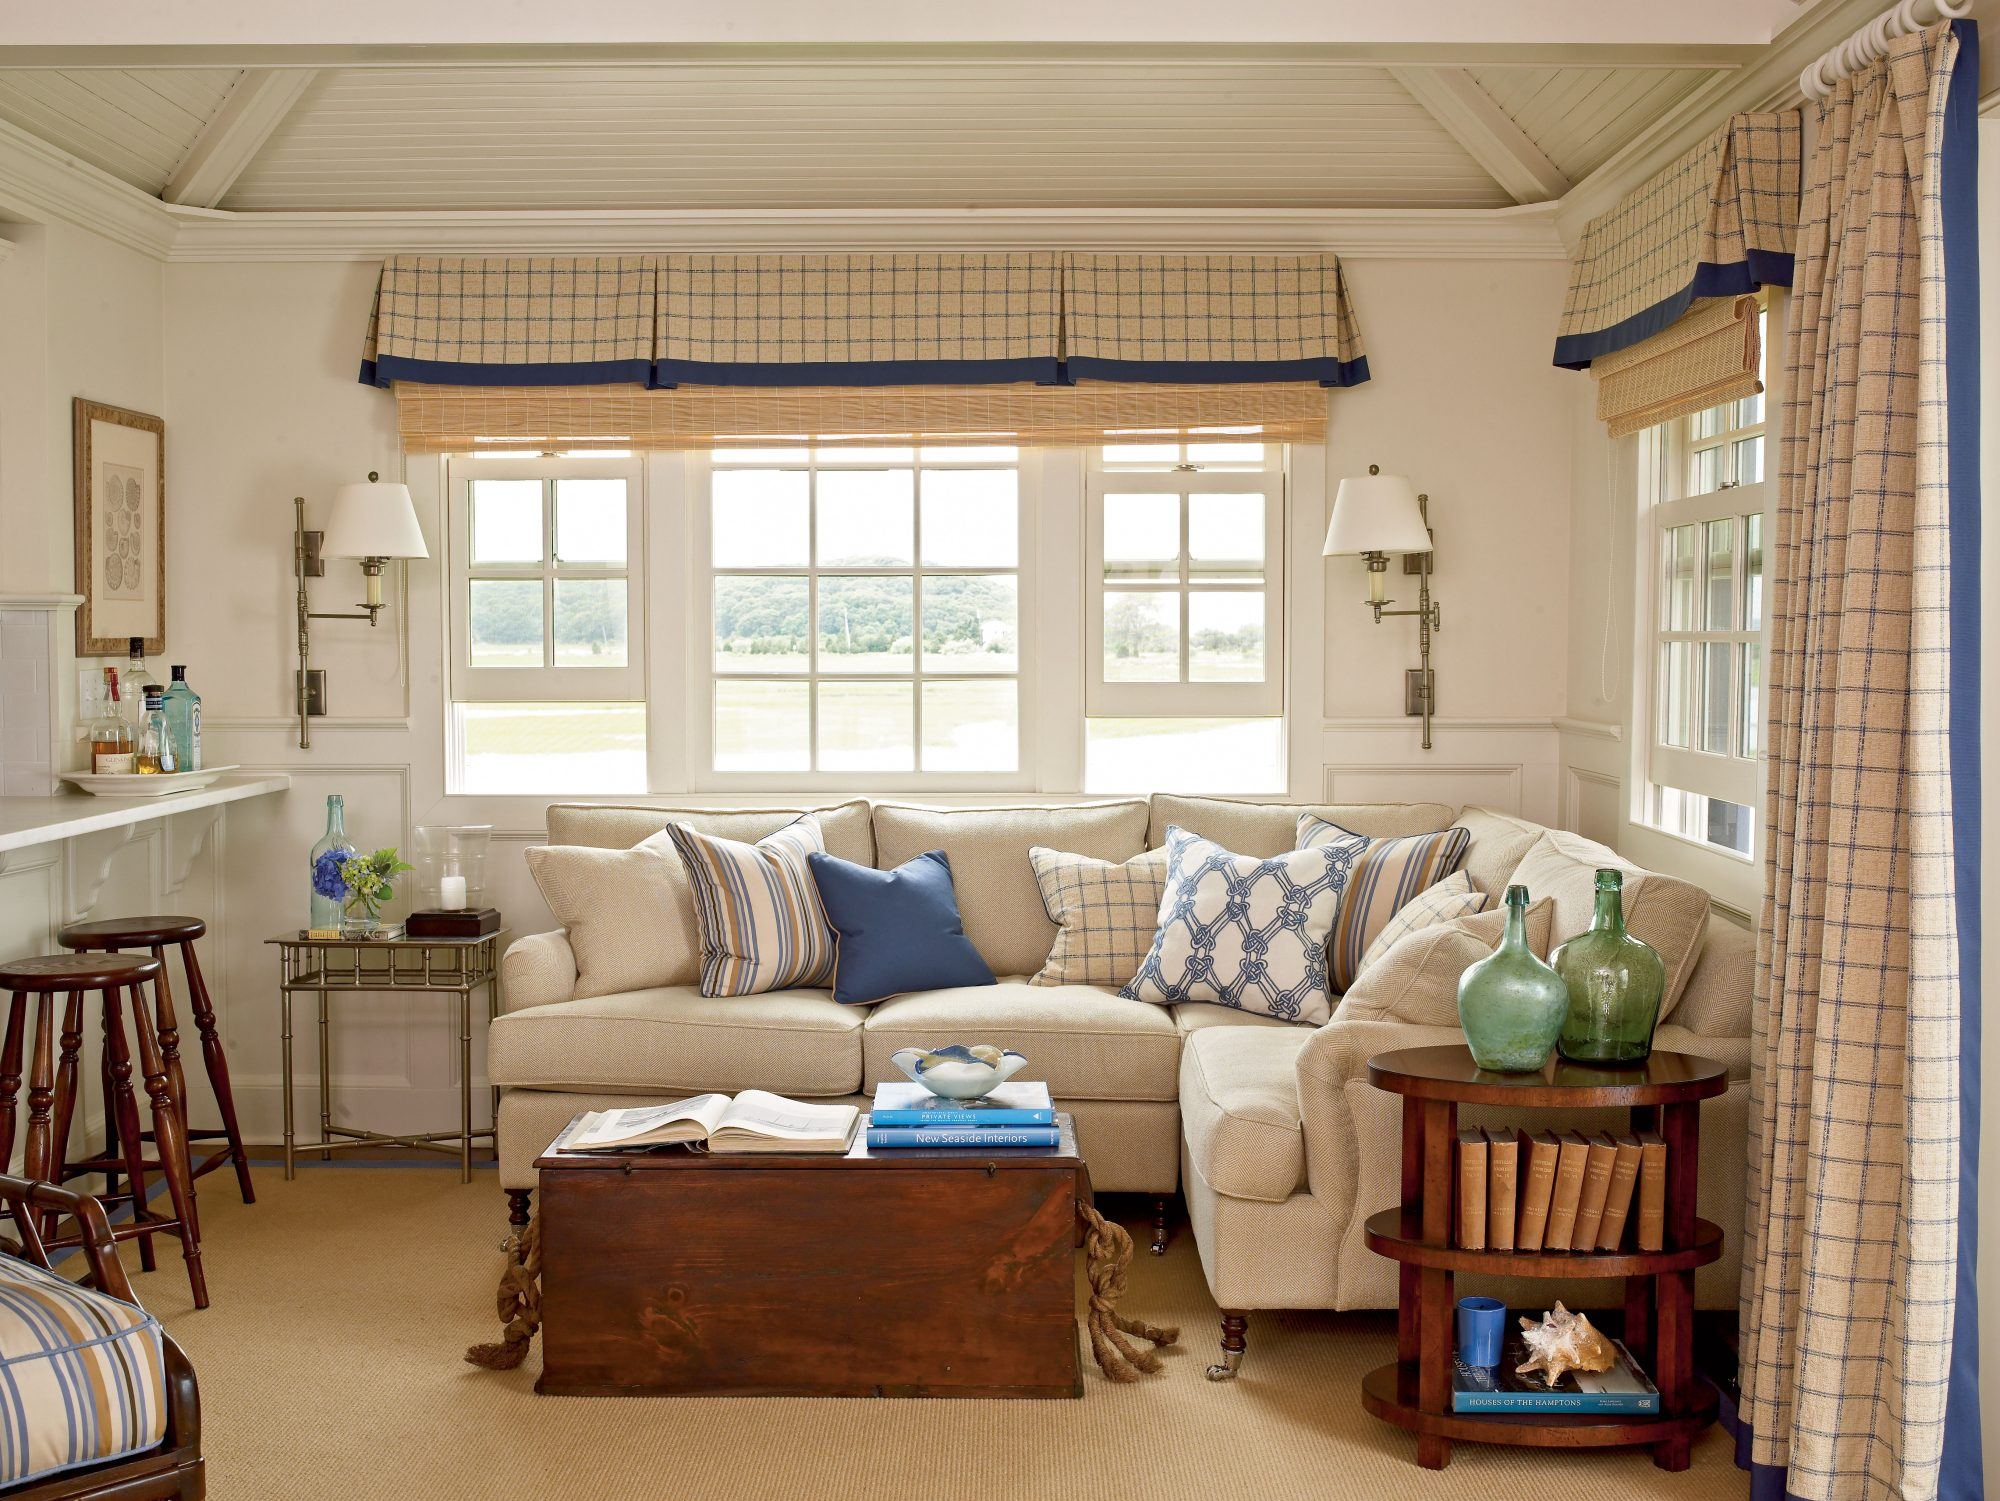 Without the pops of cobalt blue, this smart seating area's neutral tones would feel a little washed out. Fun patterned pillows with drapery and flowers to match don't take the focus off the main event, the wraparound water view from the windows.